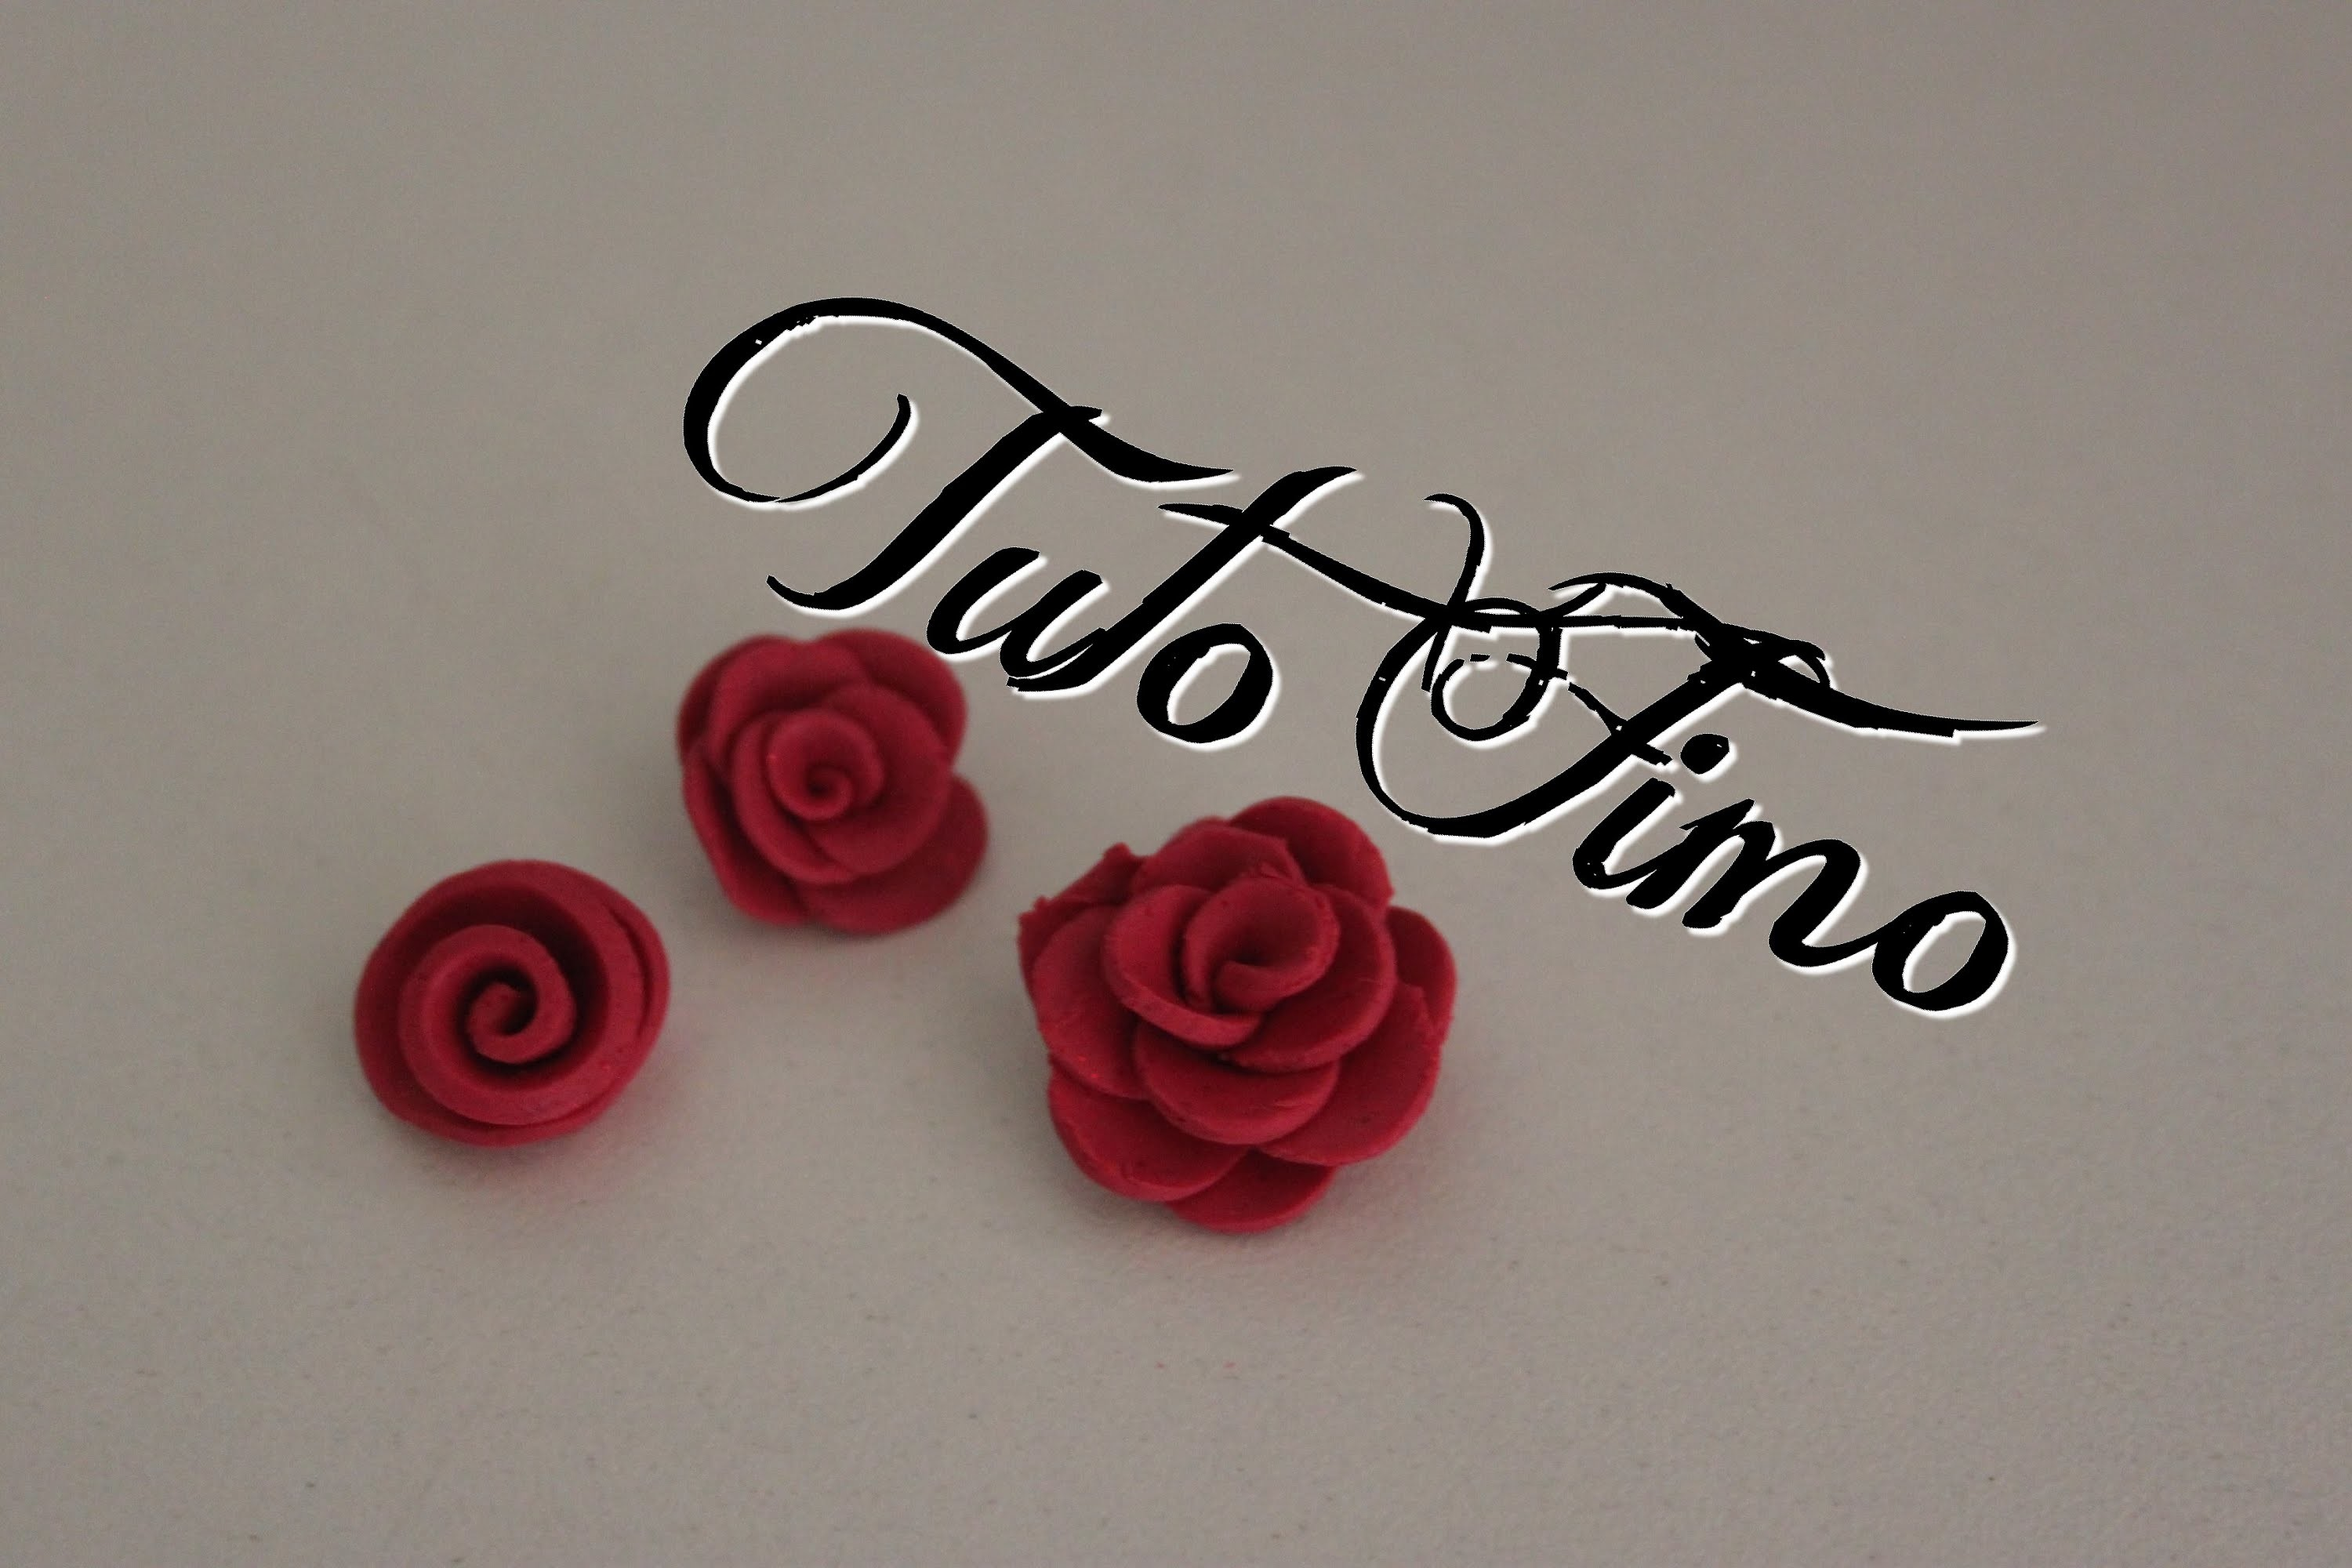 [♥✿ Tuto Fimo : La rose (3 techniques) ✿♥] ~ [♥✿ Polymer Clay Tutorial : 3 Roses ✿♥]